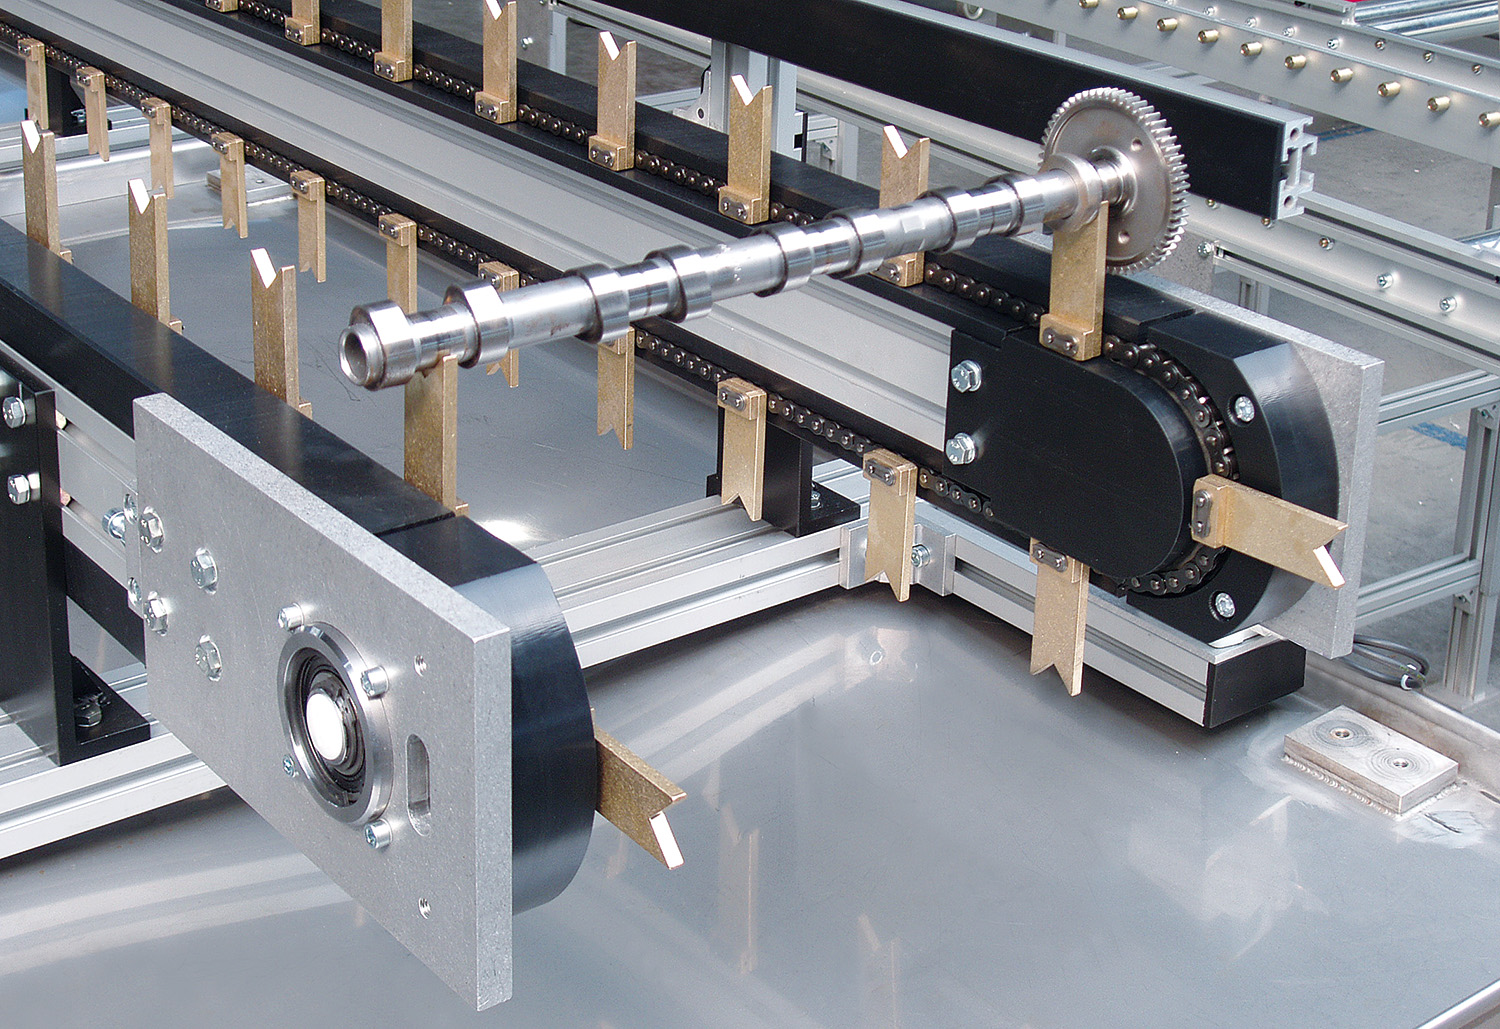 mk introduces an indexing chain conveyor system - Mepca